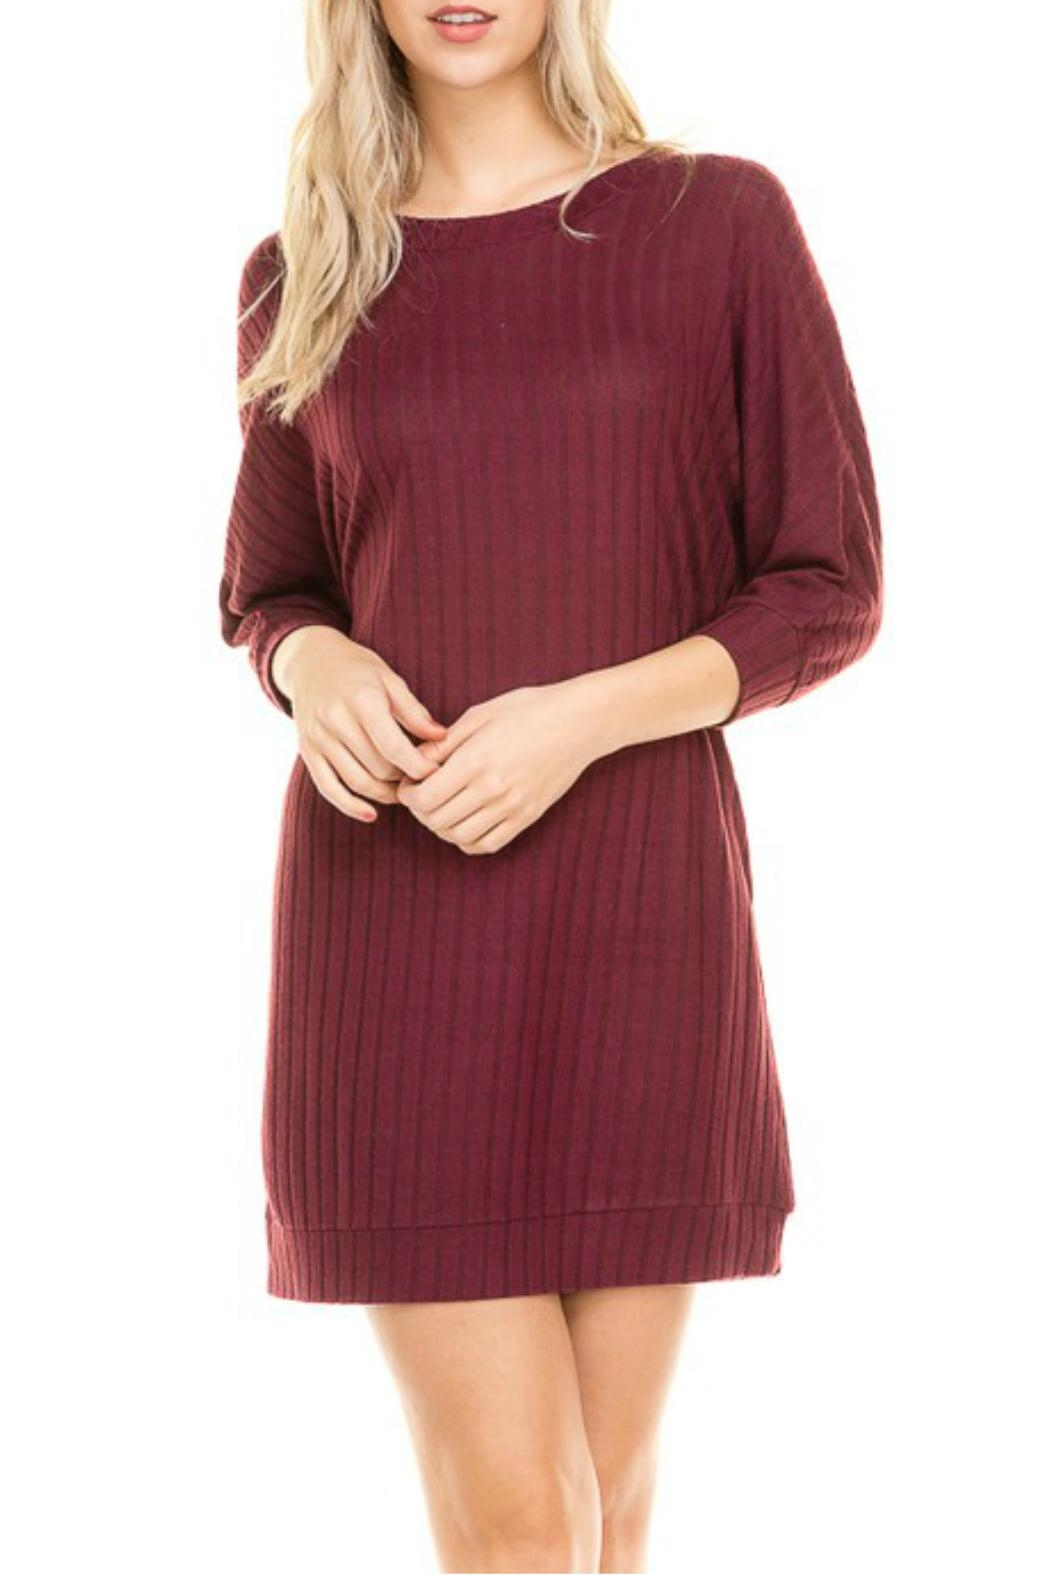 Minx Merlot Sweater Dress - Front Cropped Image